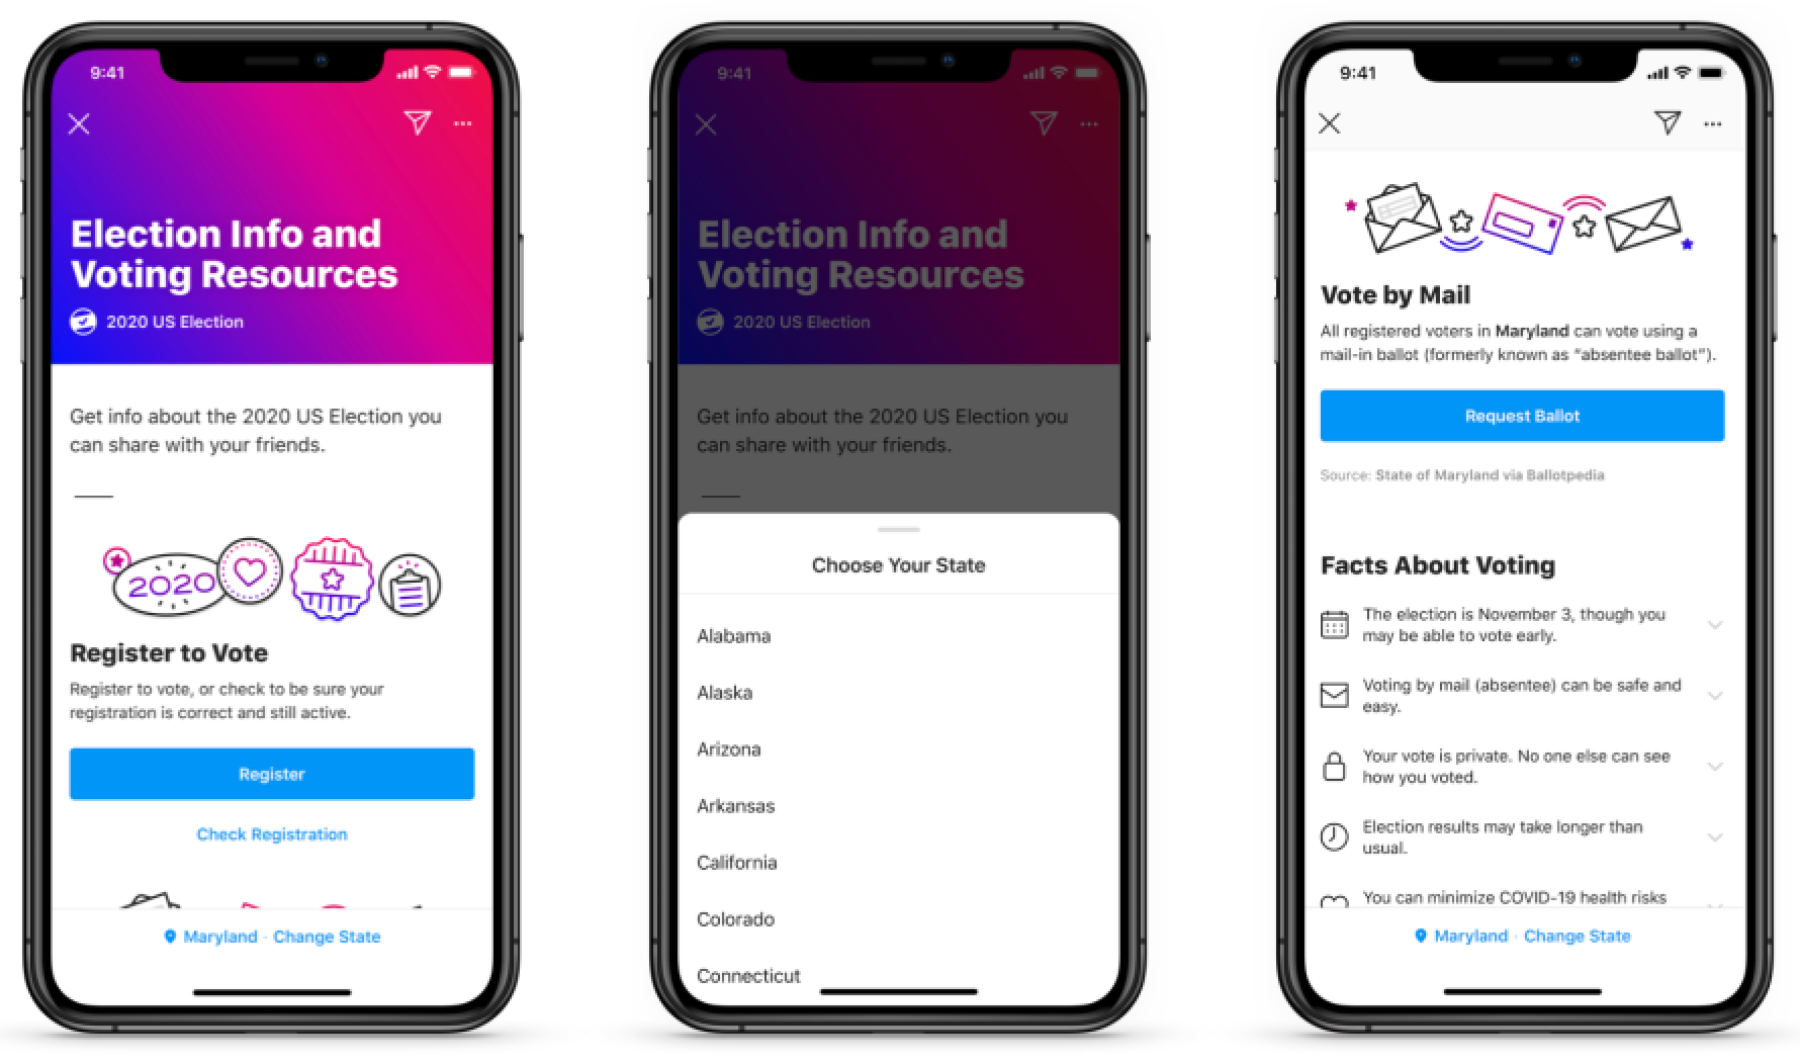 Election-Info-and-Voting-Resources-on-Instagram.png